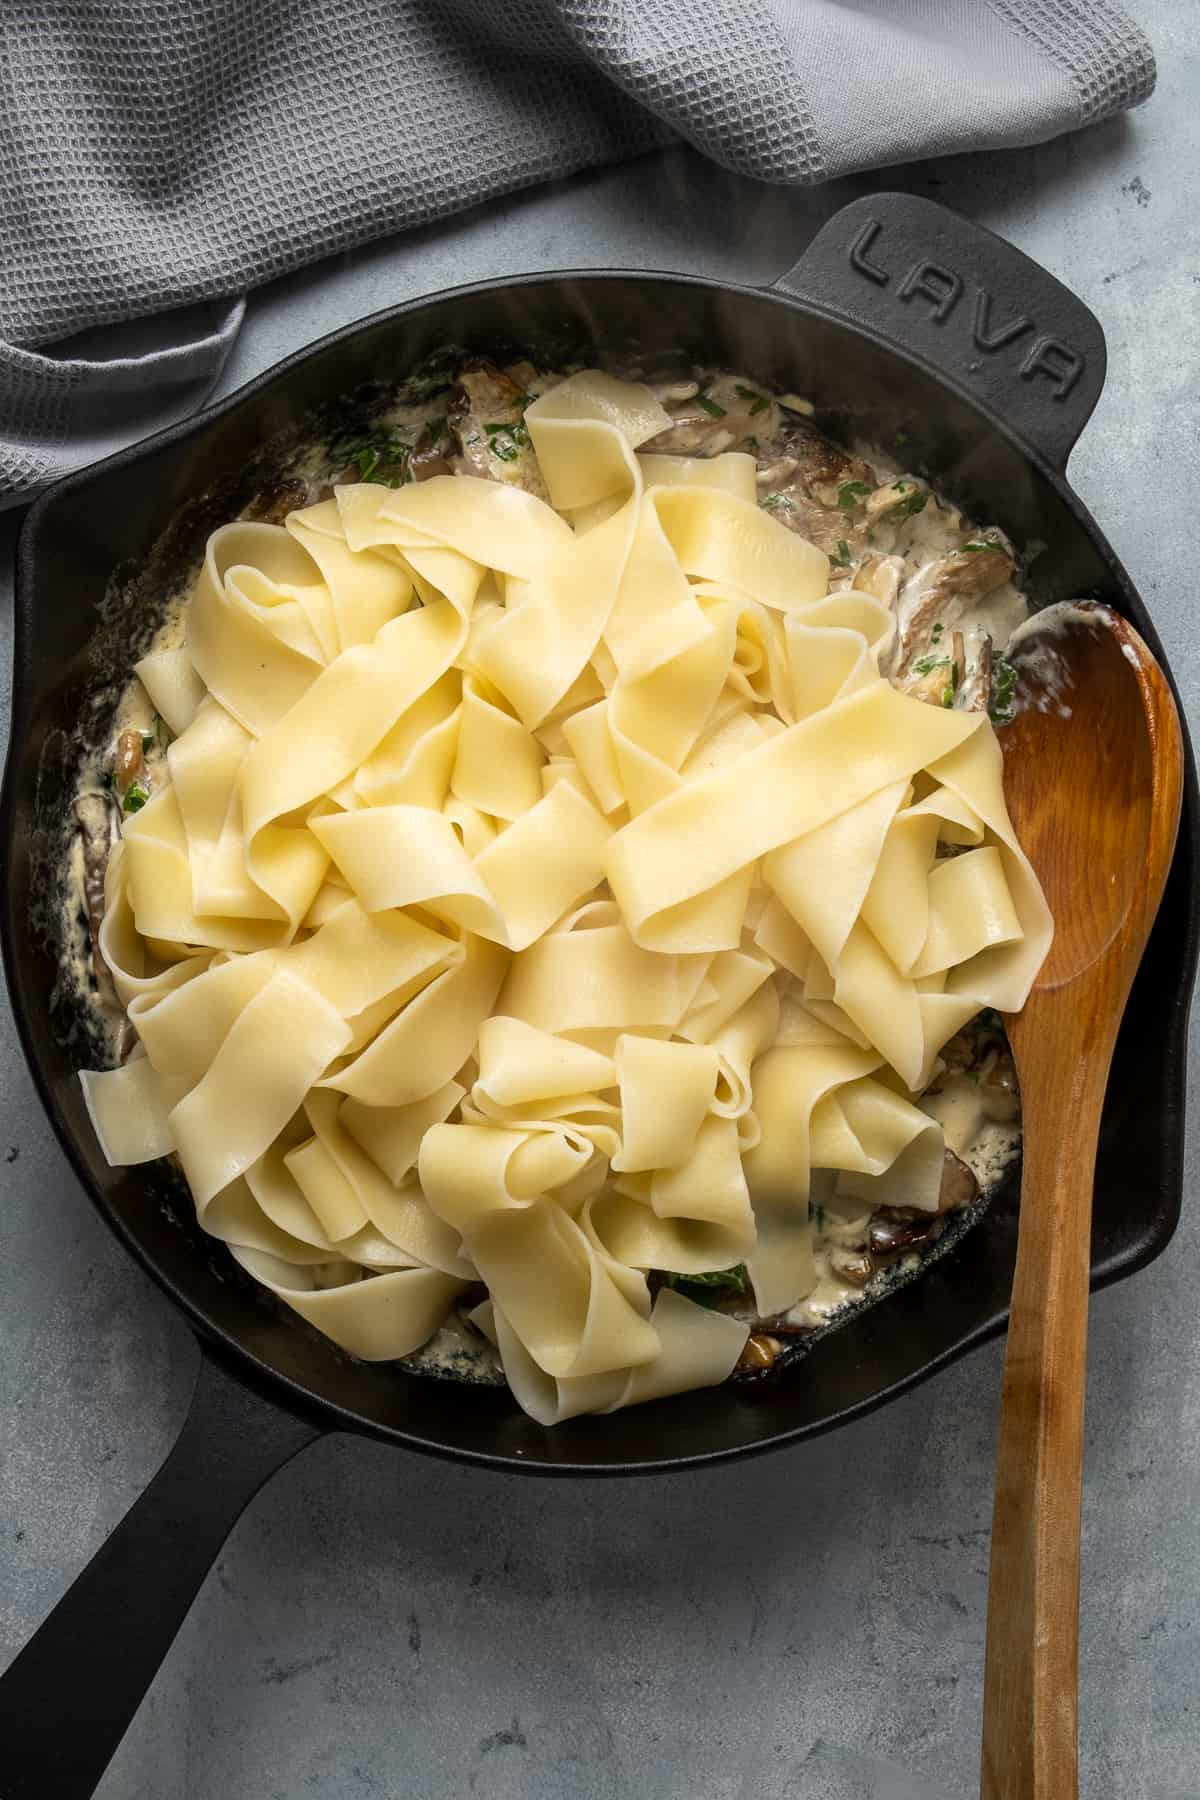 Cooked pasta combining with creamy mushroom sauce in a cast iron skillet and a wooden spoon inside it.